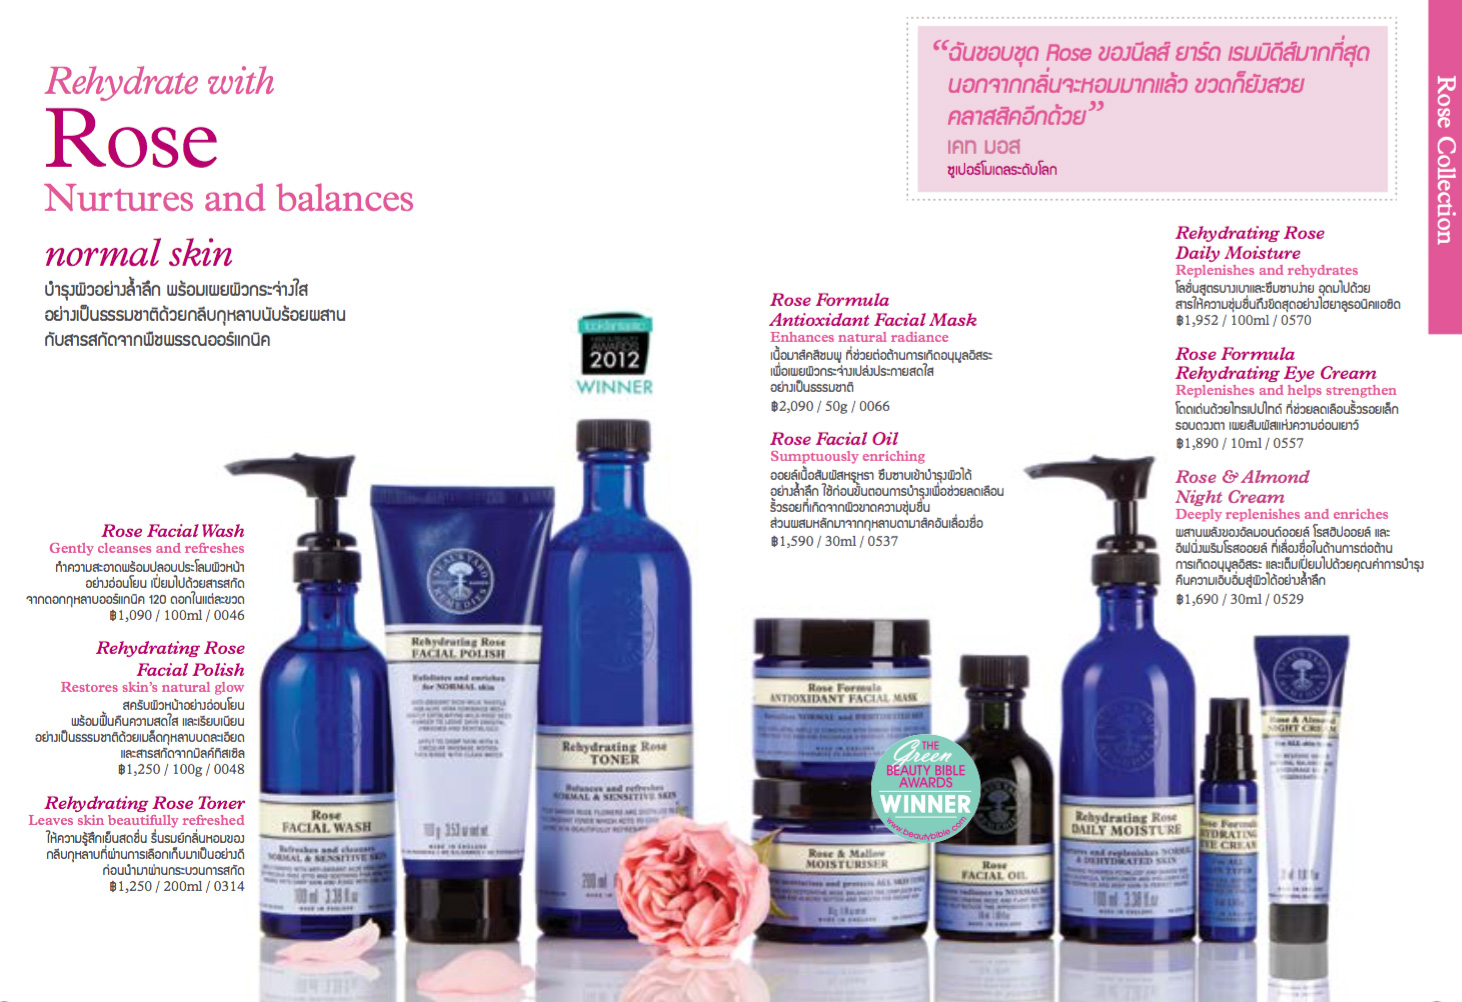 Neal's Yard Remedies Rose Collection